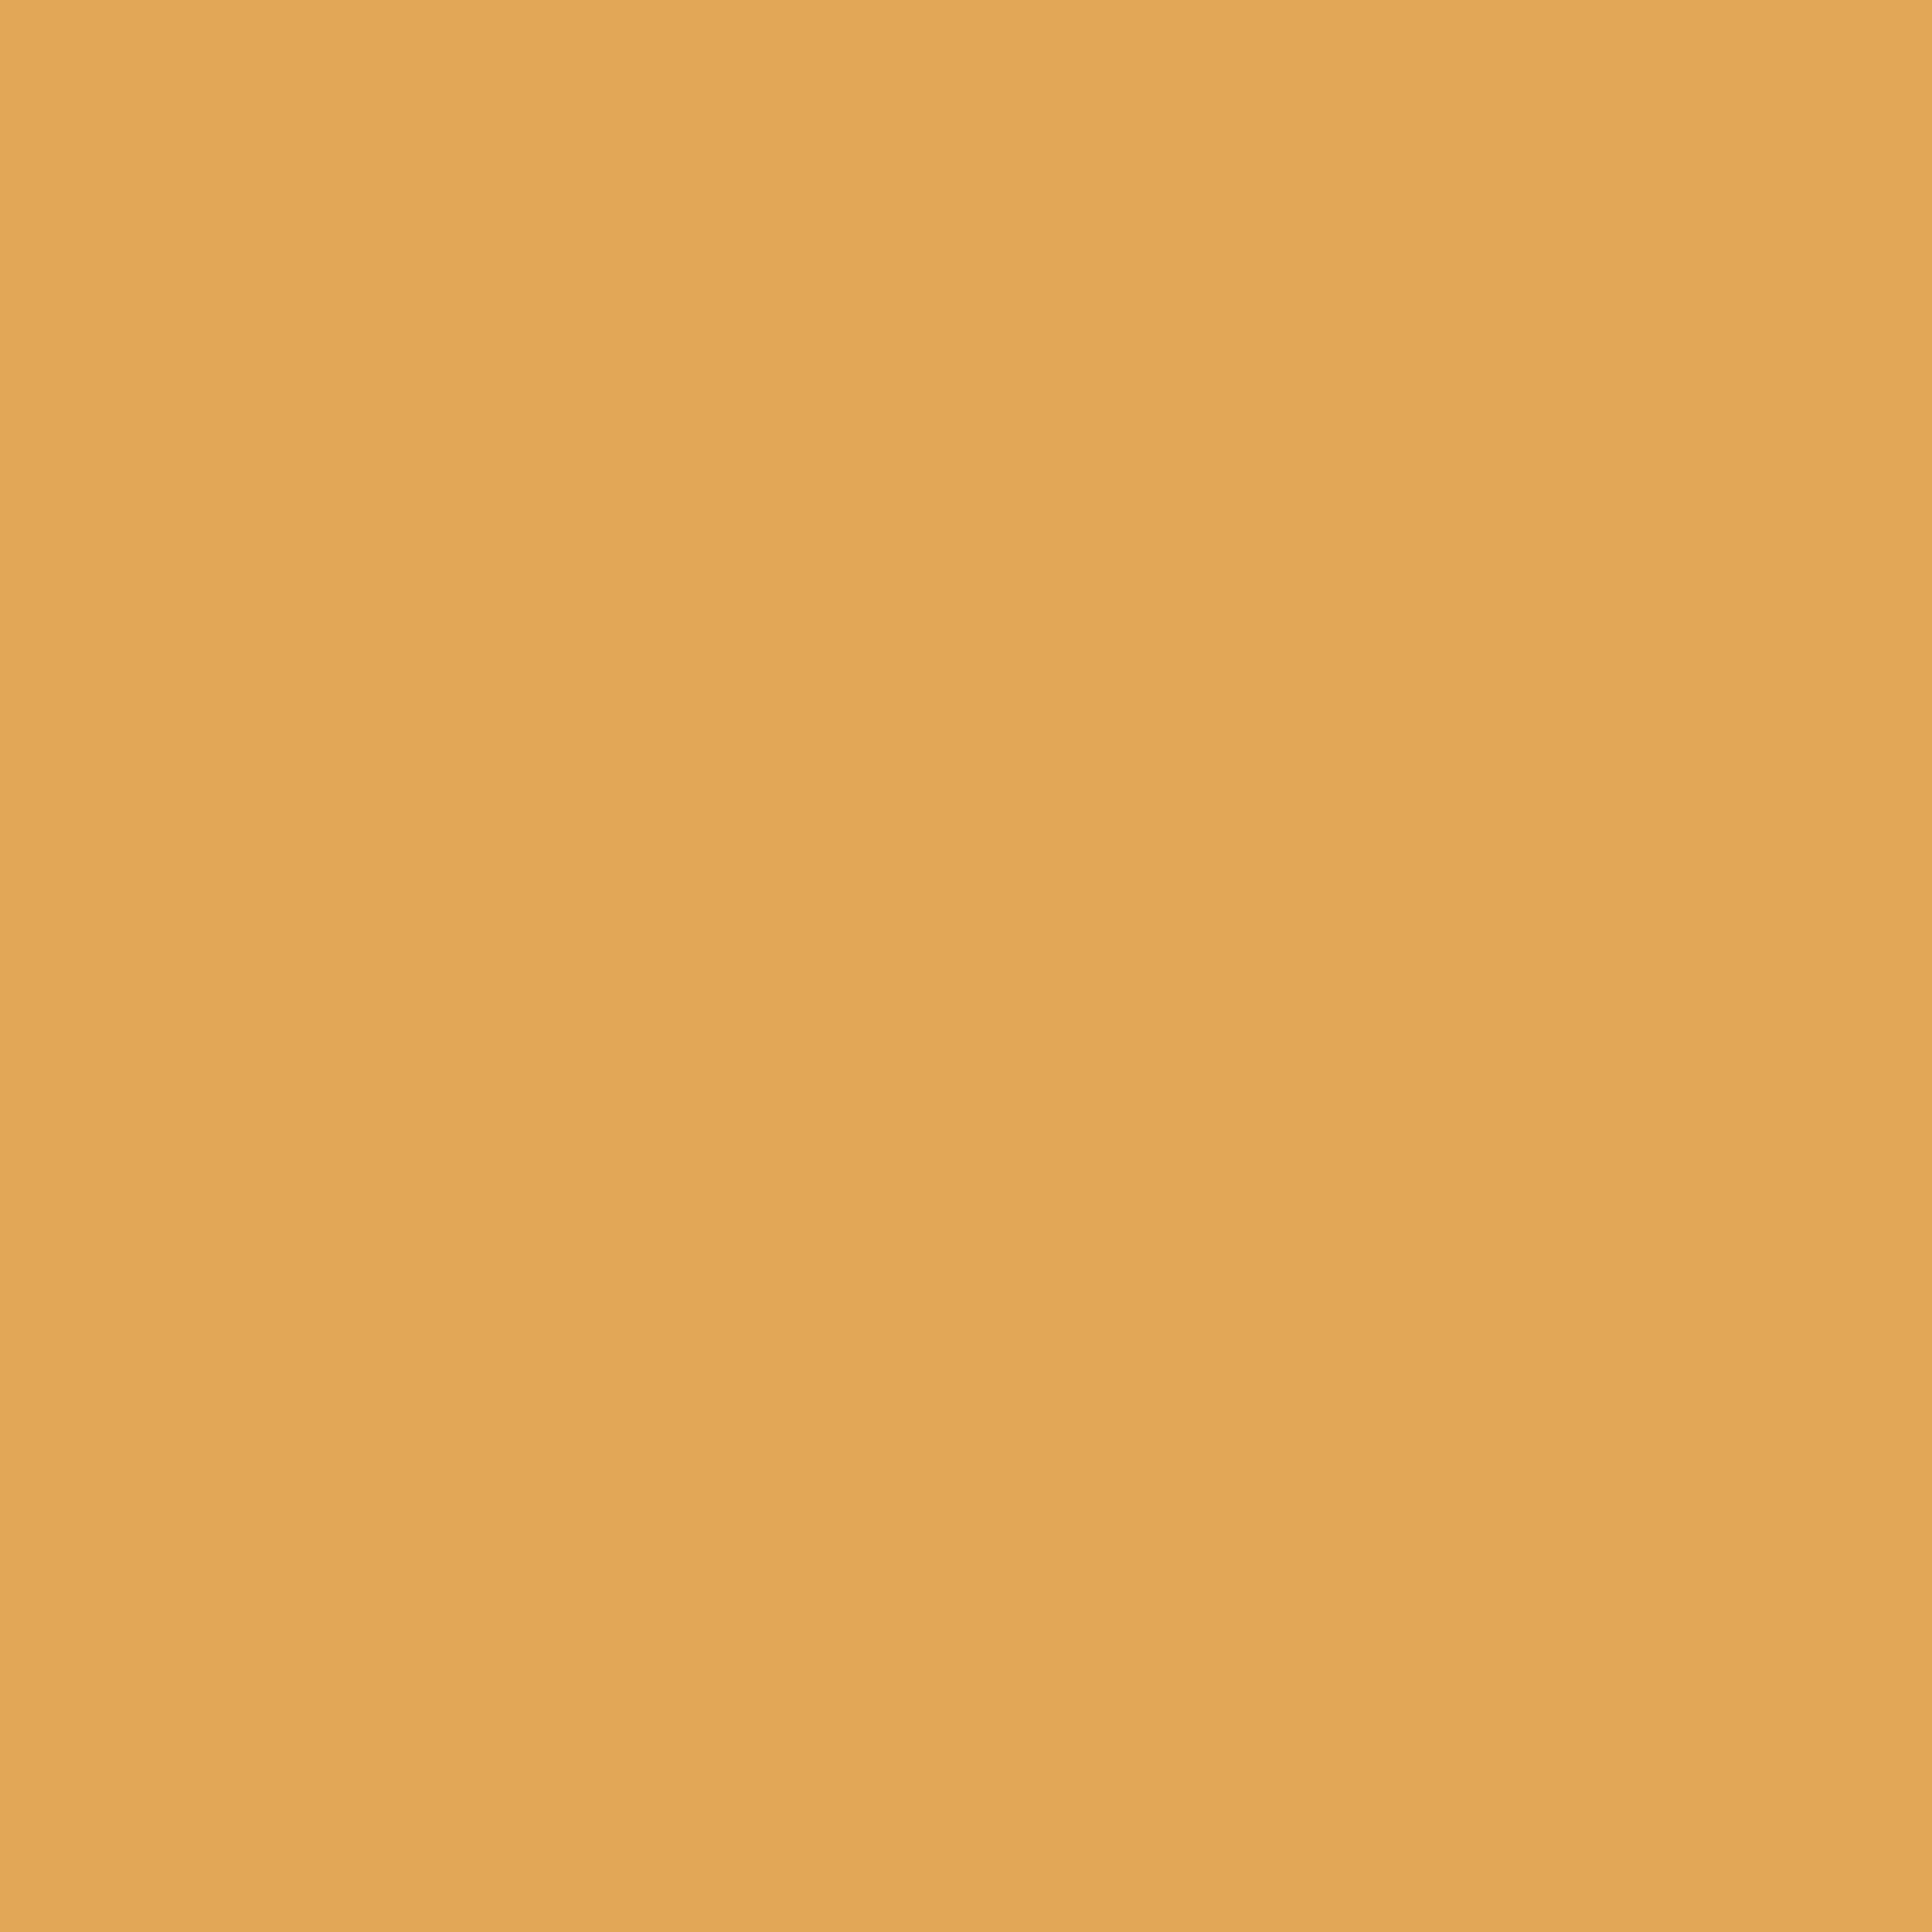 2732x2732 Indian Yellow Solid Color Background